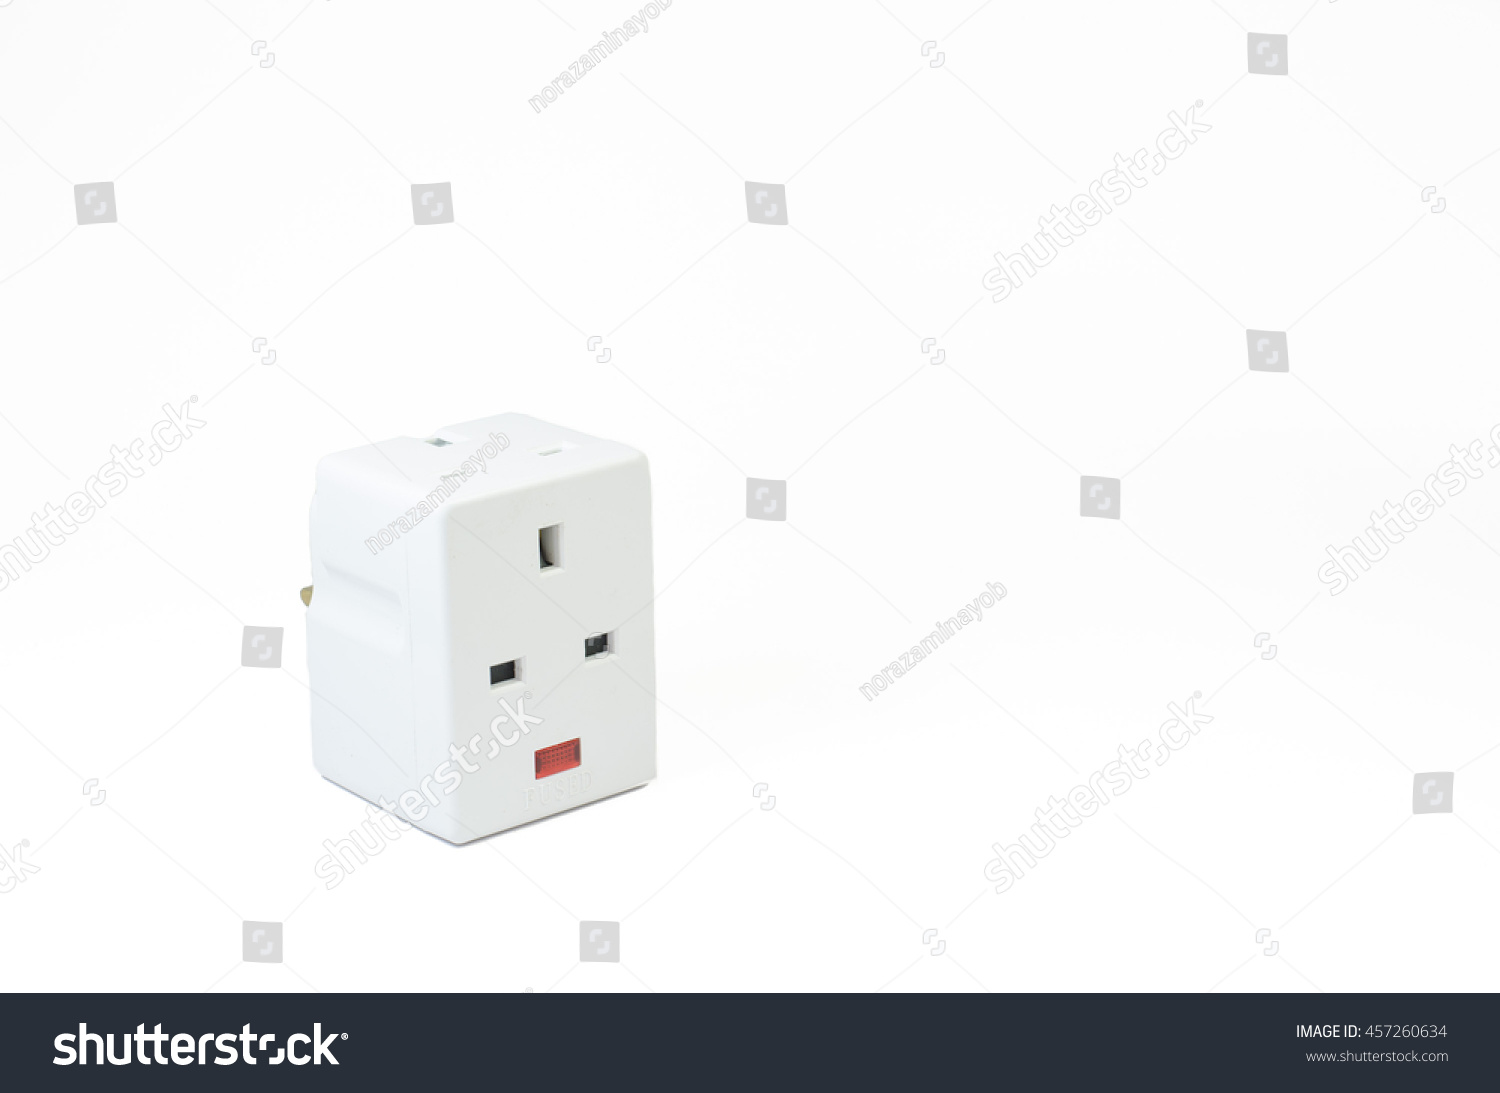 3 way electric wiring diagram explanation three socket isolated on stock photo